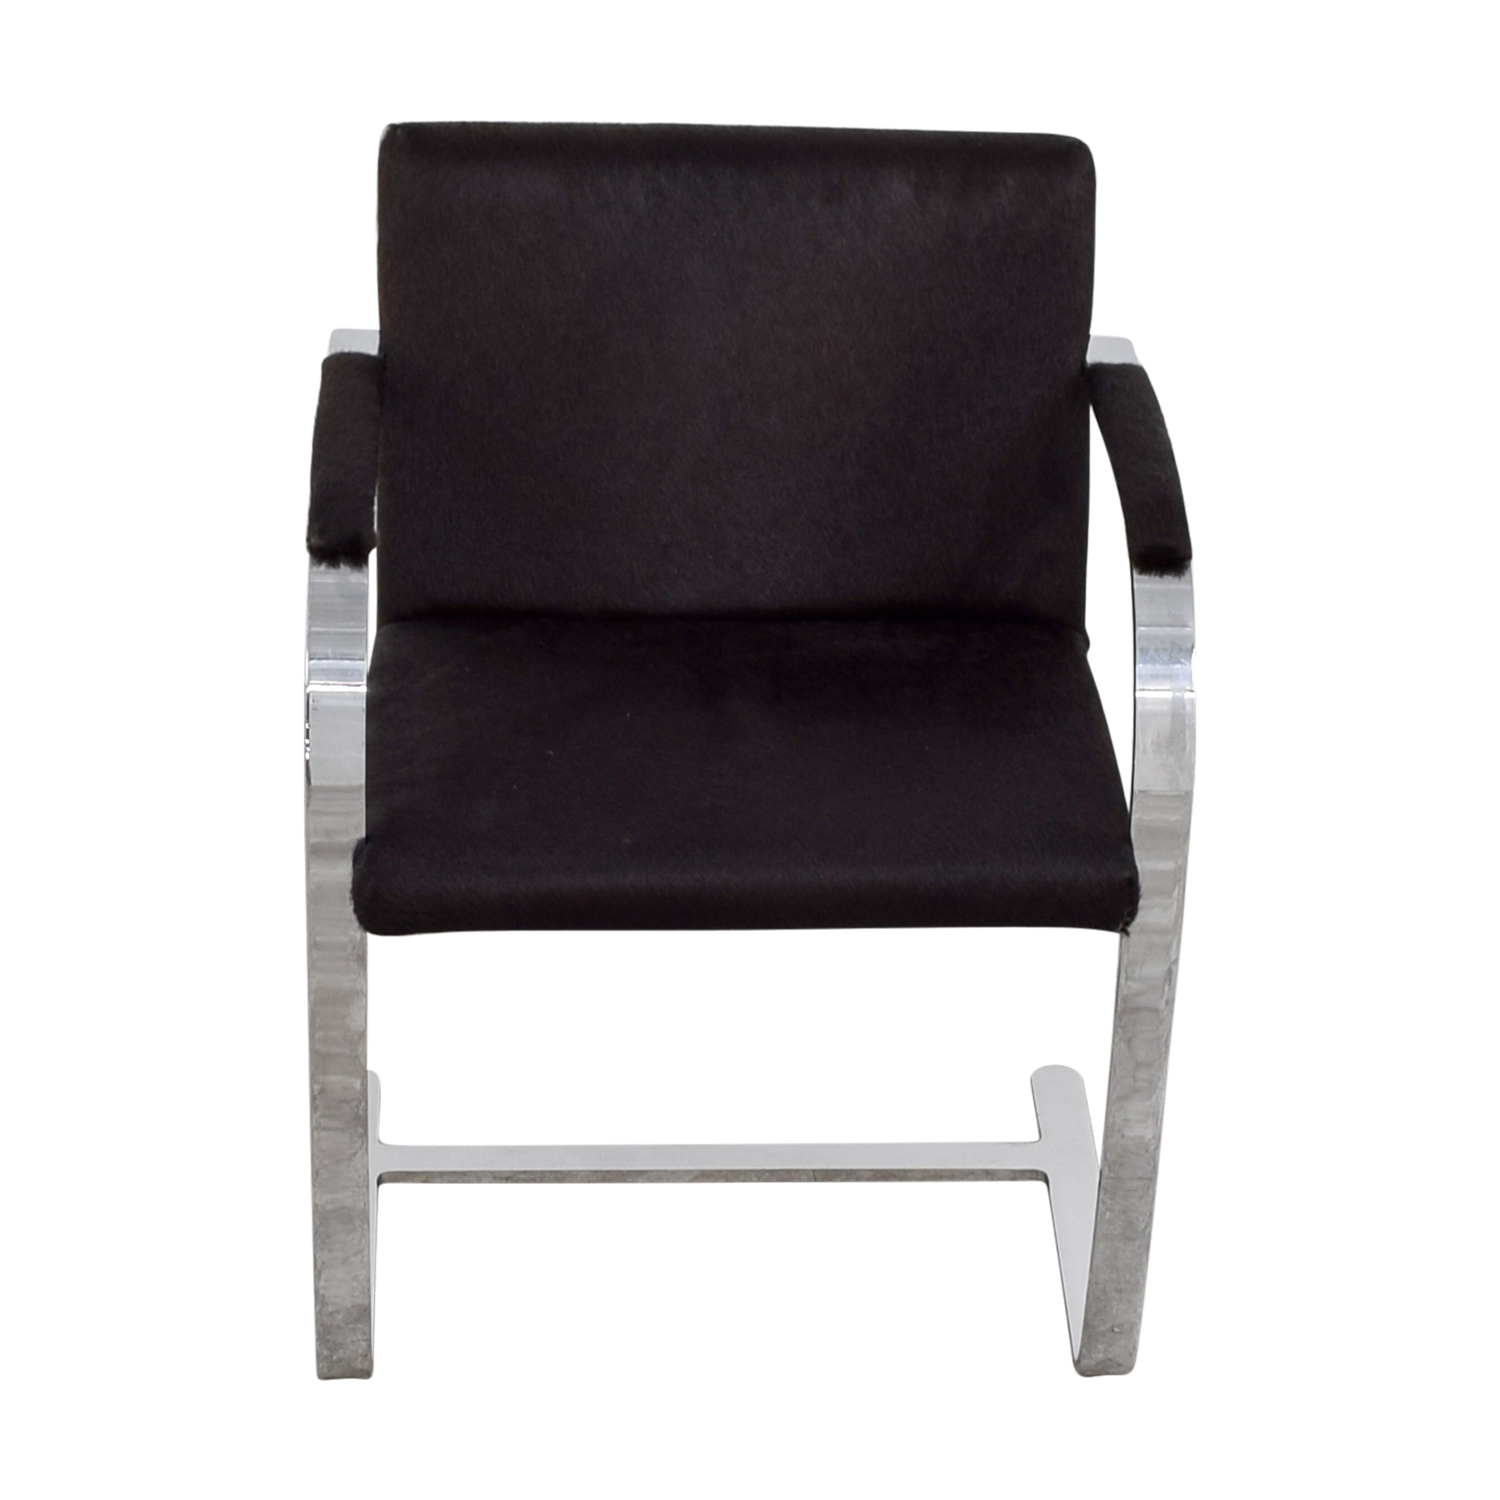 Soho Concept Furniture Soho Concept Furniture Black Pony Skin Accent Chair price